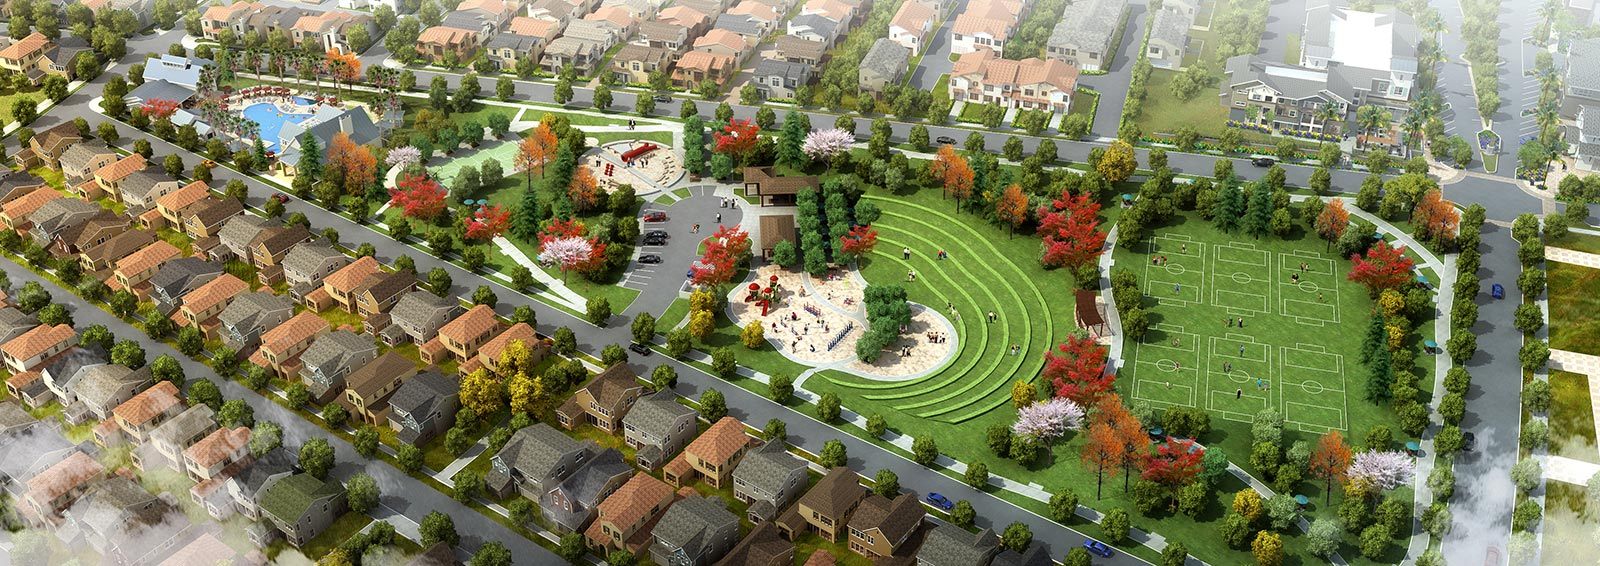 Escaya Park | The Village of Escaya in Chula Vista, CA | Brookfield Residential